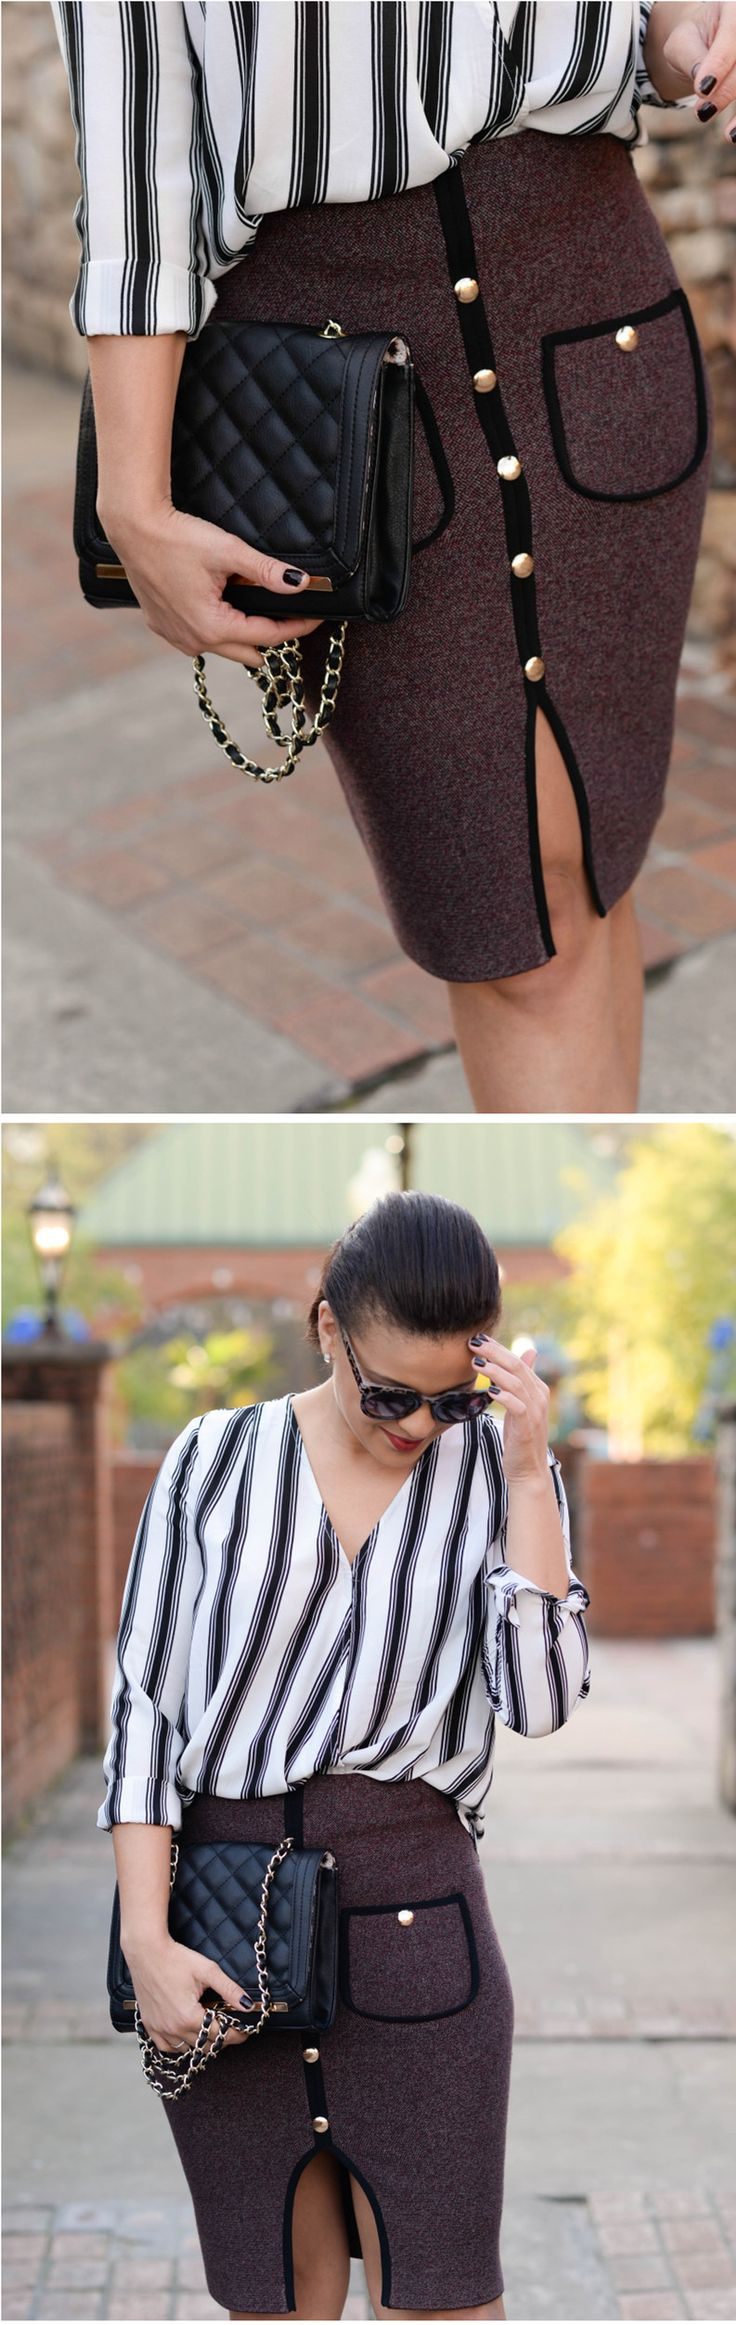 Studded Pockets Knitted Pencil Skirt featured by Fashionably Lo Blog